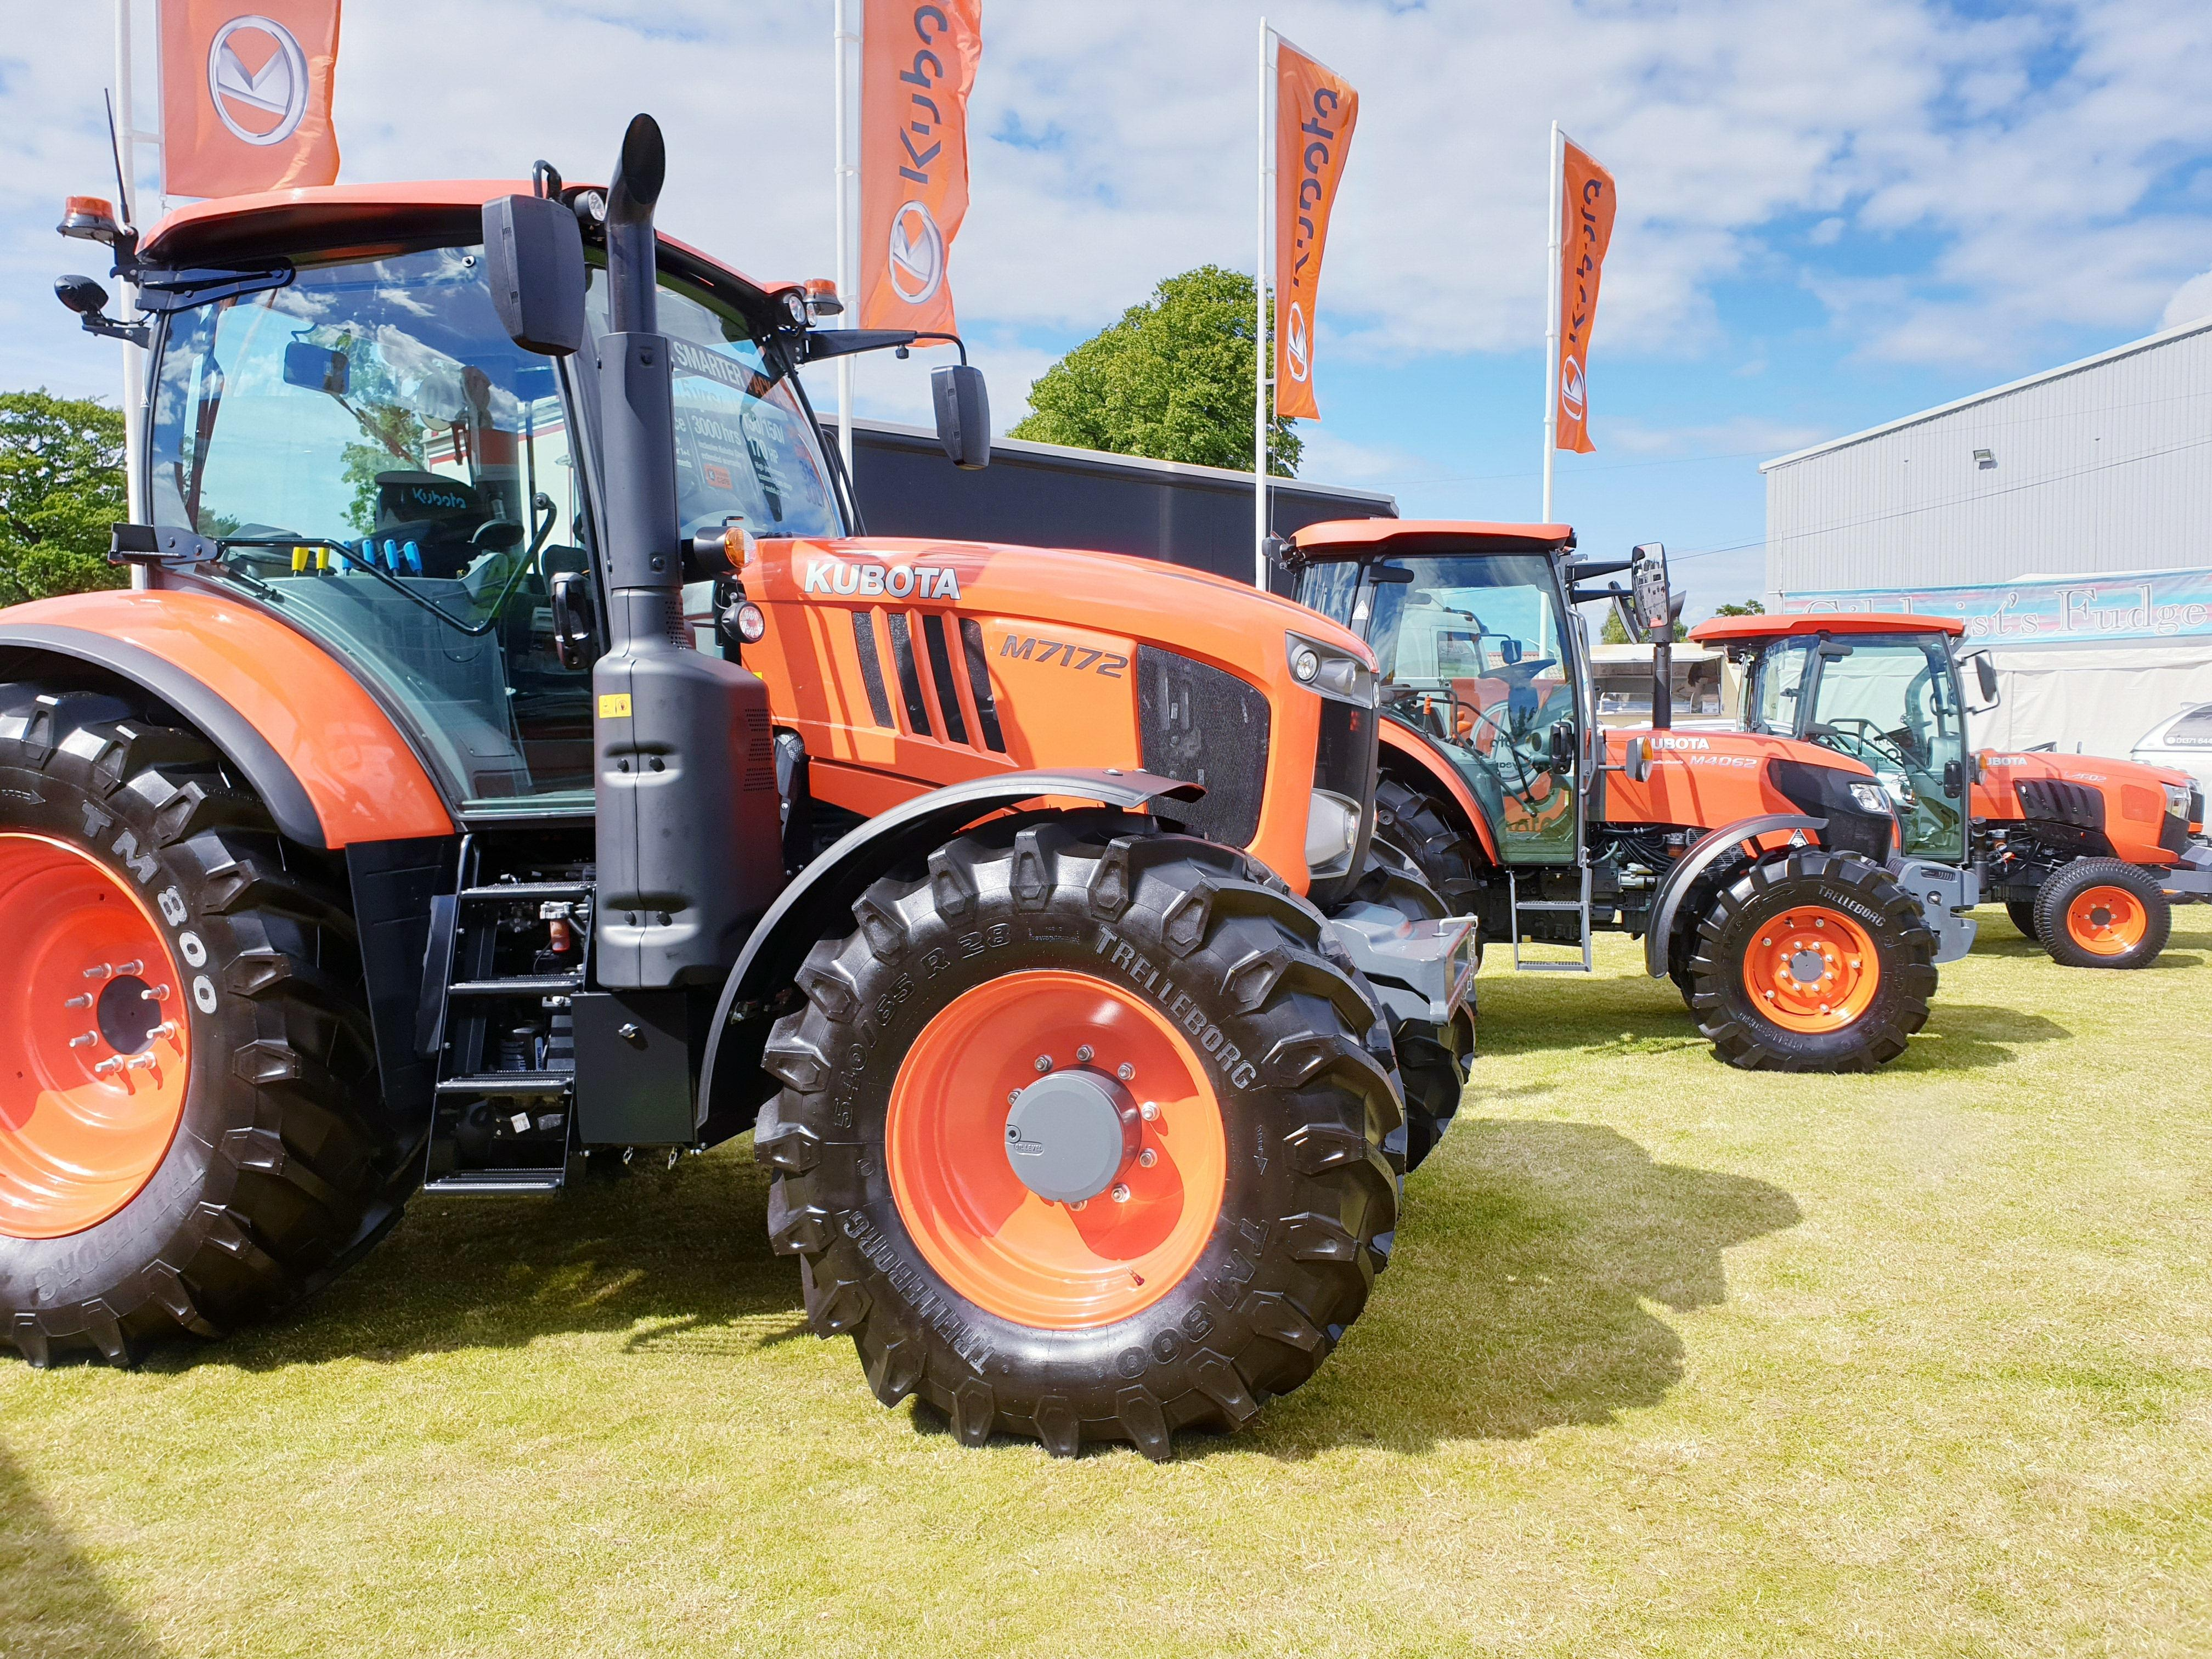 Kubota Exhibiting at the highland show